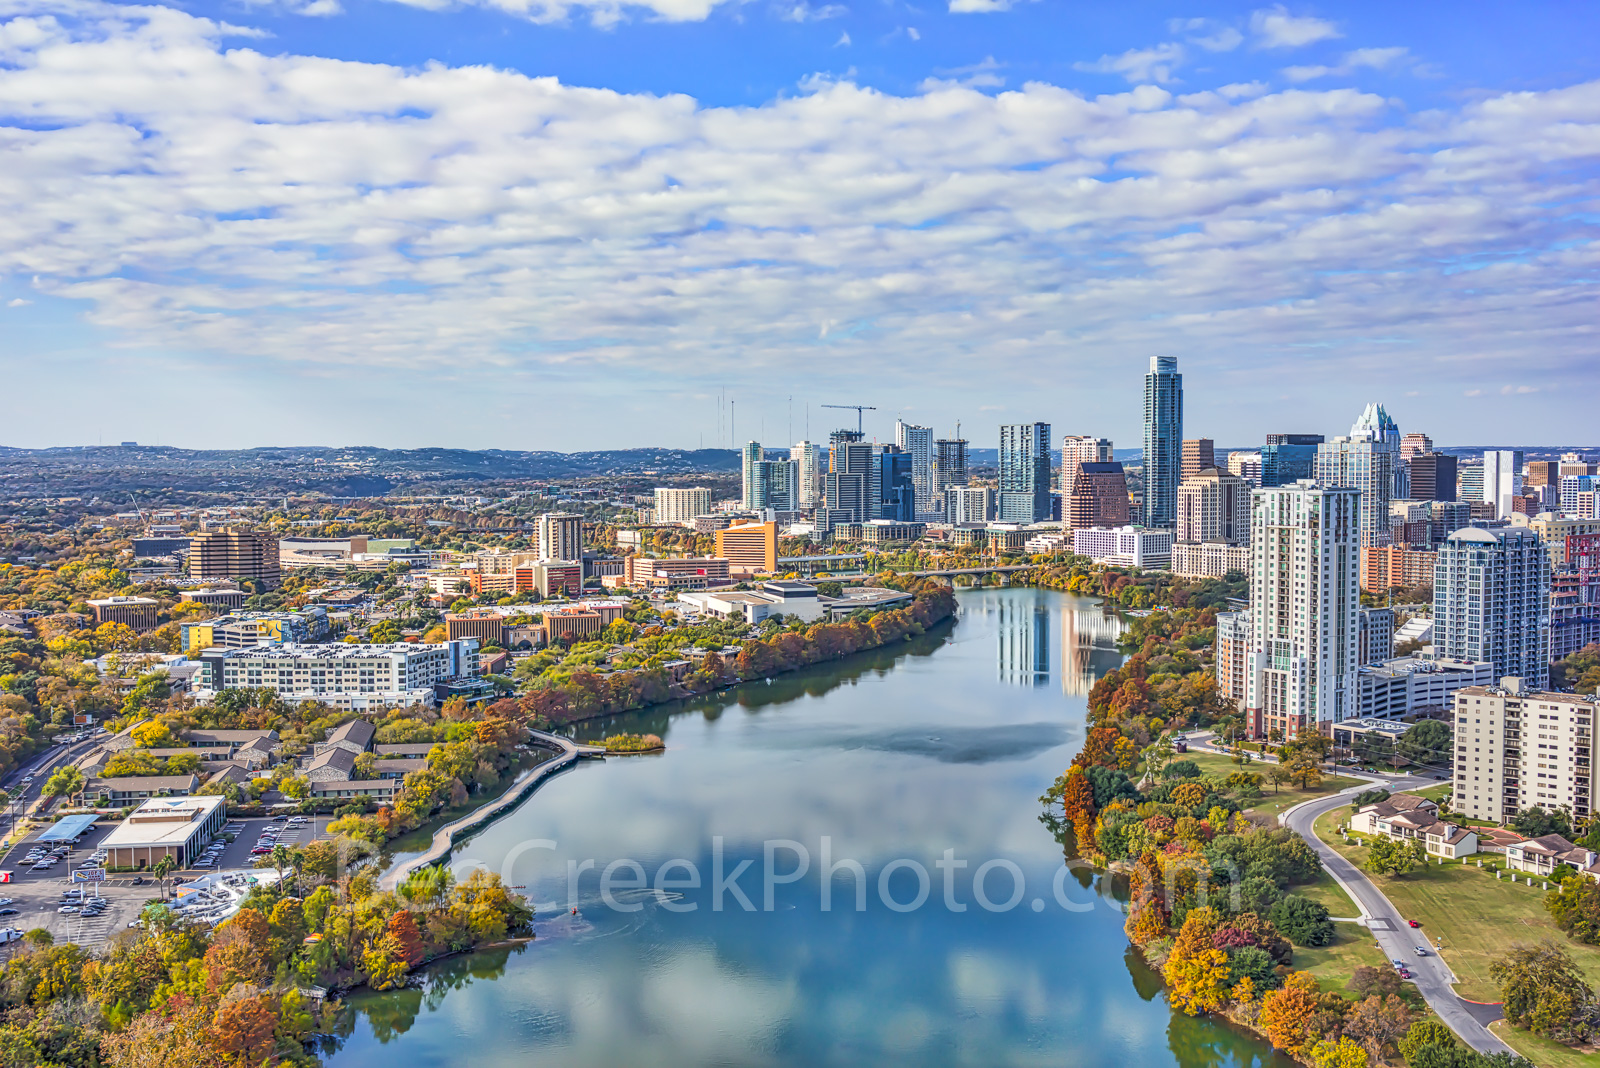 Austin skyline, Austin skyline fall view,  fall, aerial, high rise, Lady Bird lake, city, downtown, buildings, shoreline, IH35, water, reflection, clouds, colorful fall trees, banks, panorama, Austoni, photo